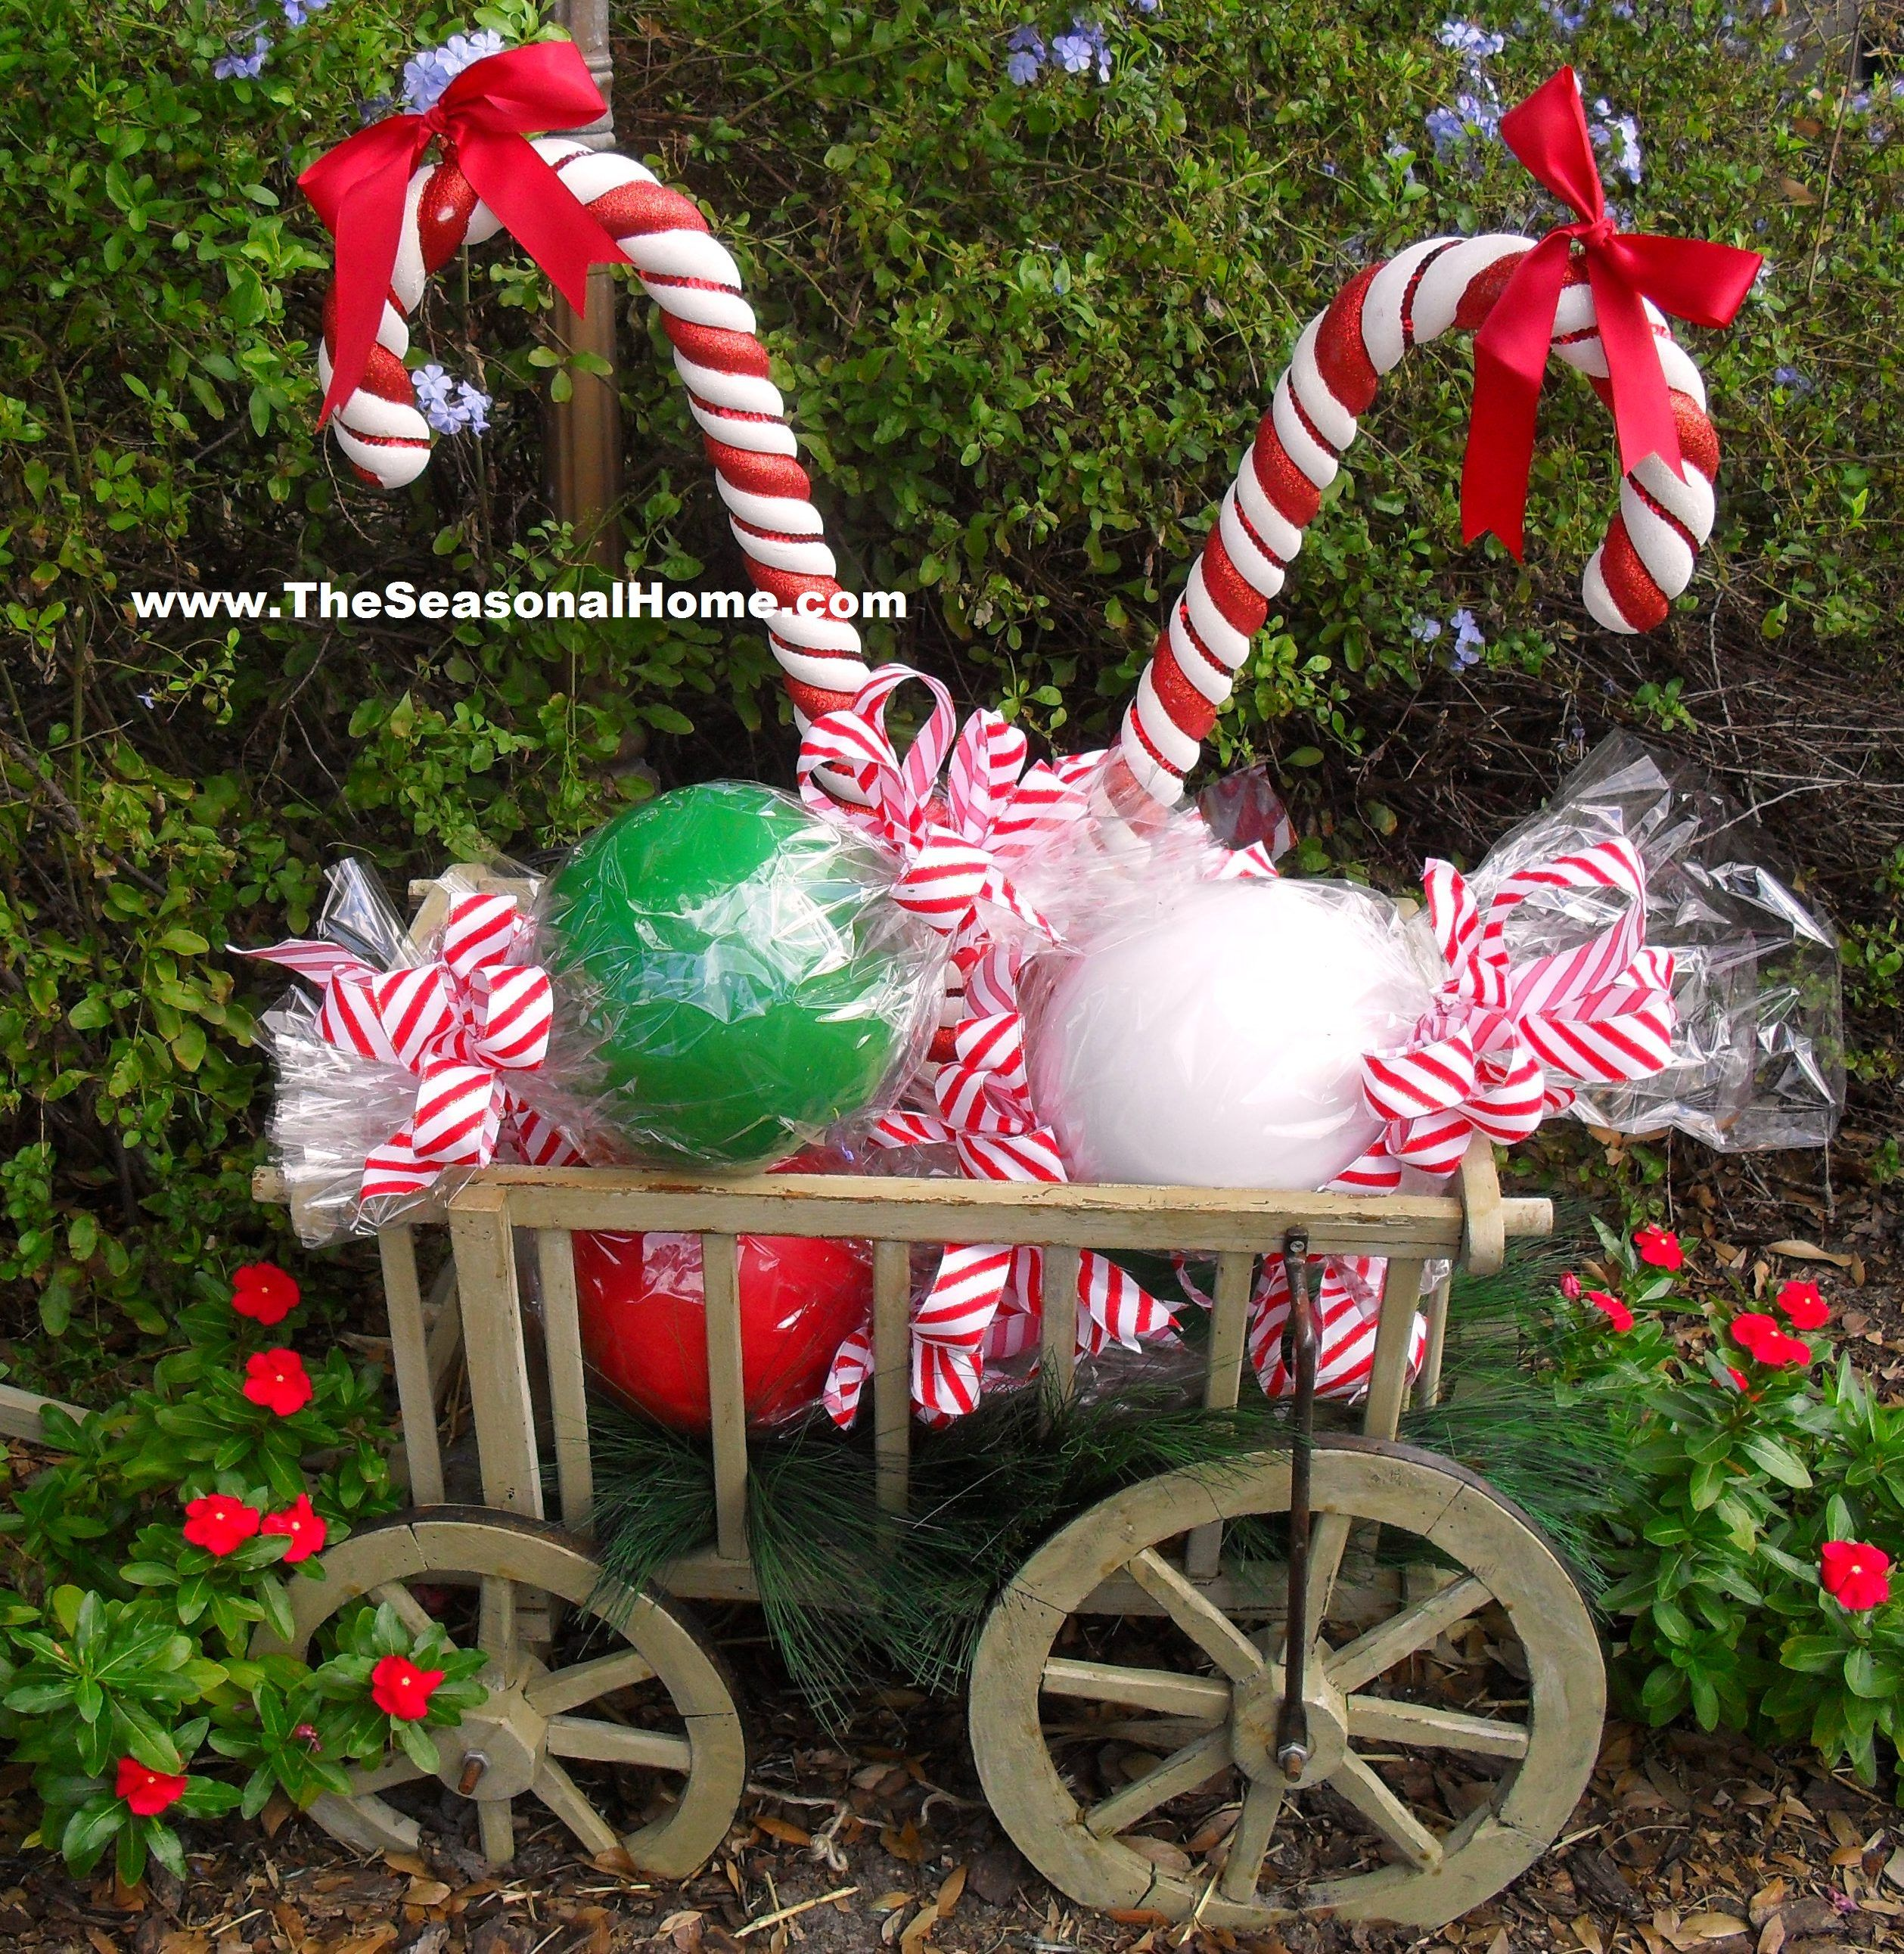 How to diy outdoor candy on the seasonal home blog for Outdoor xmas decorations